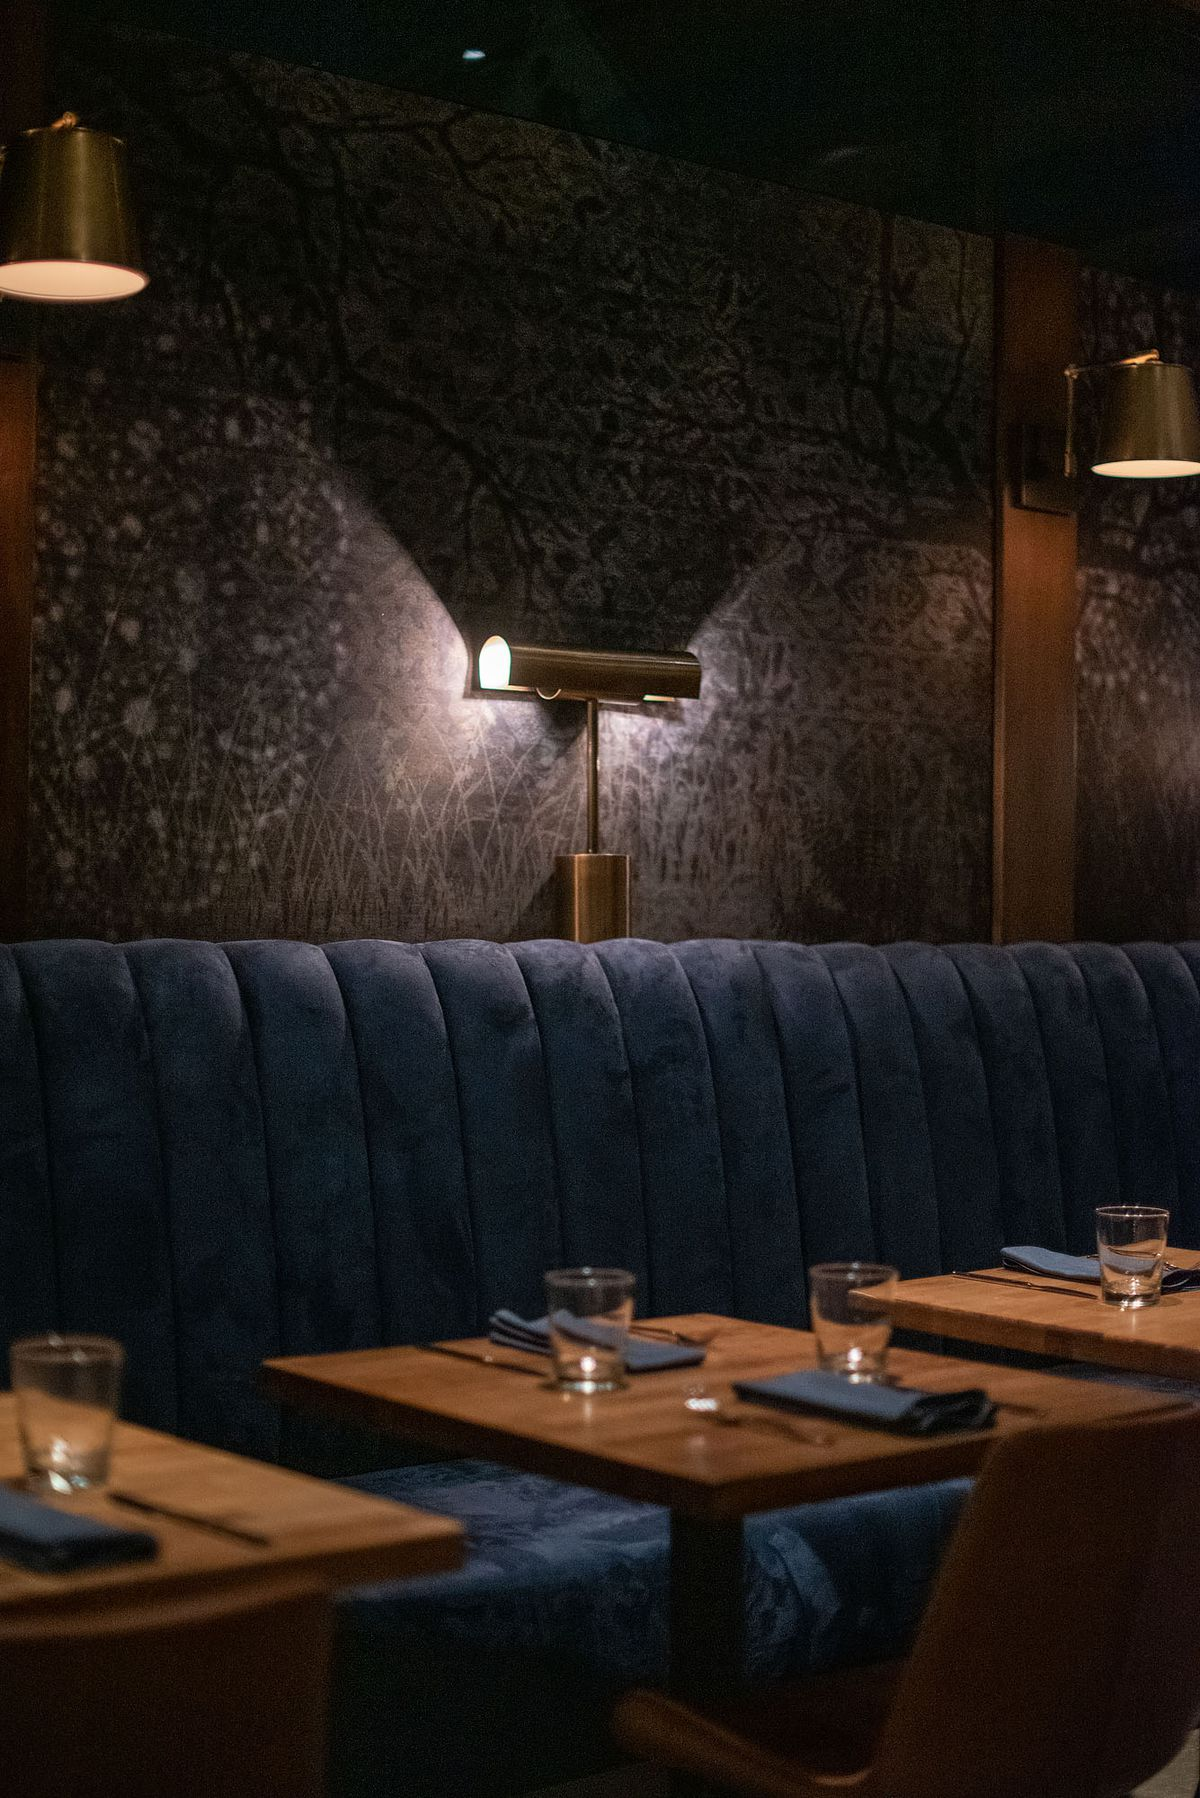 Pendant lighting at a restaurant glows from two ends.